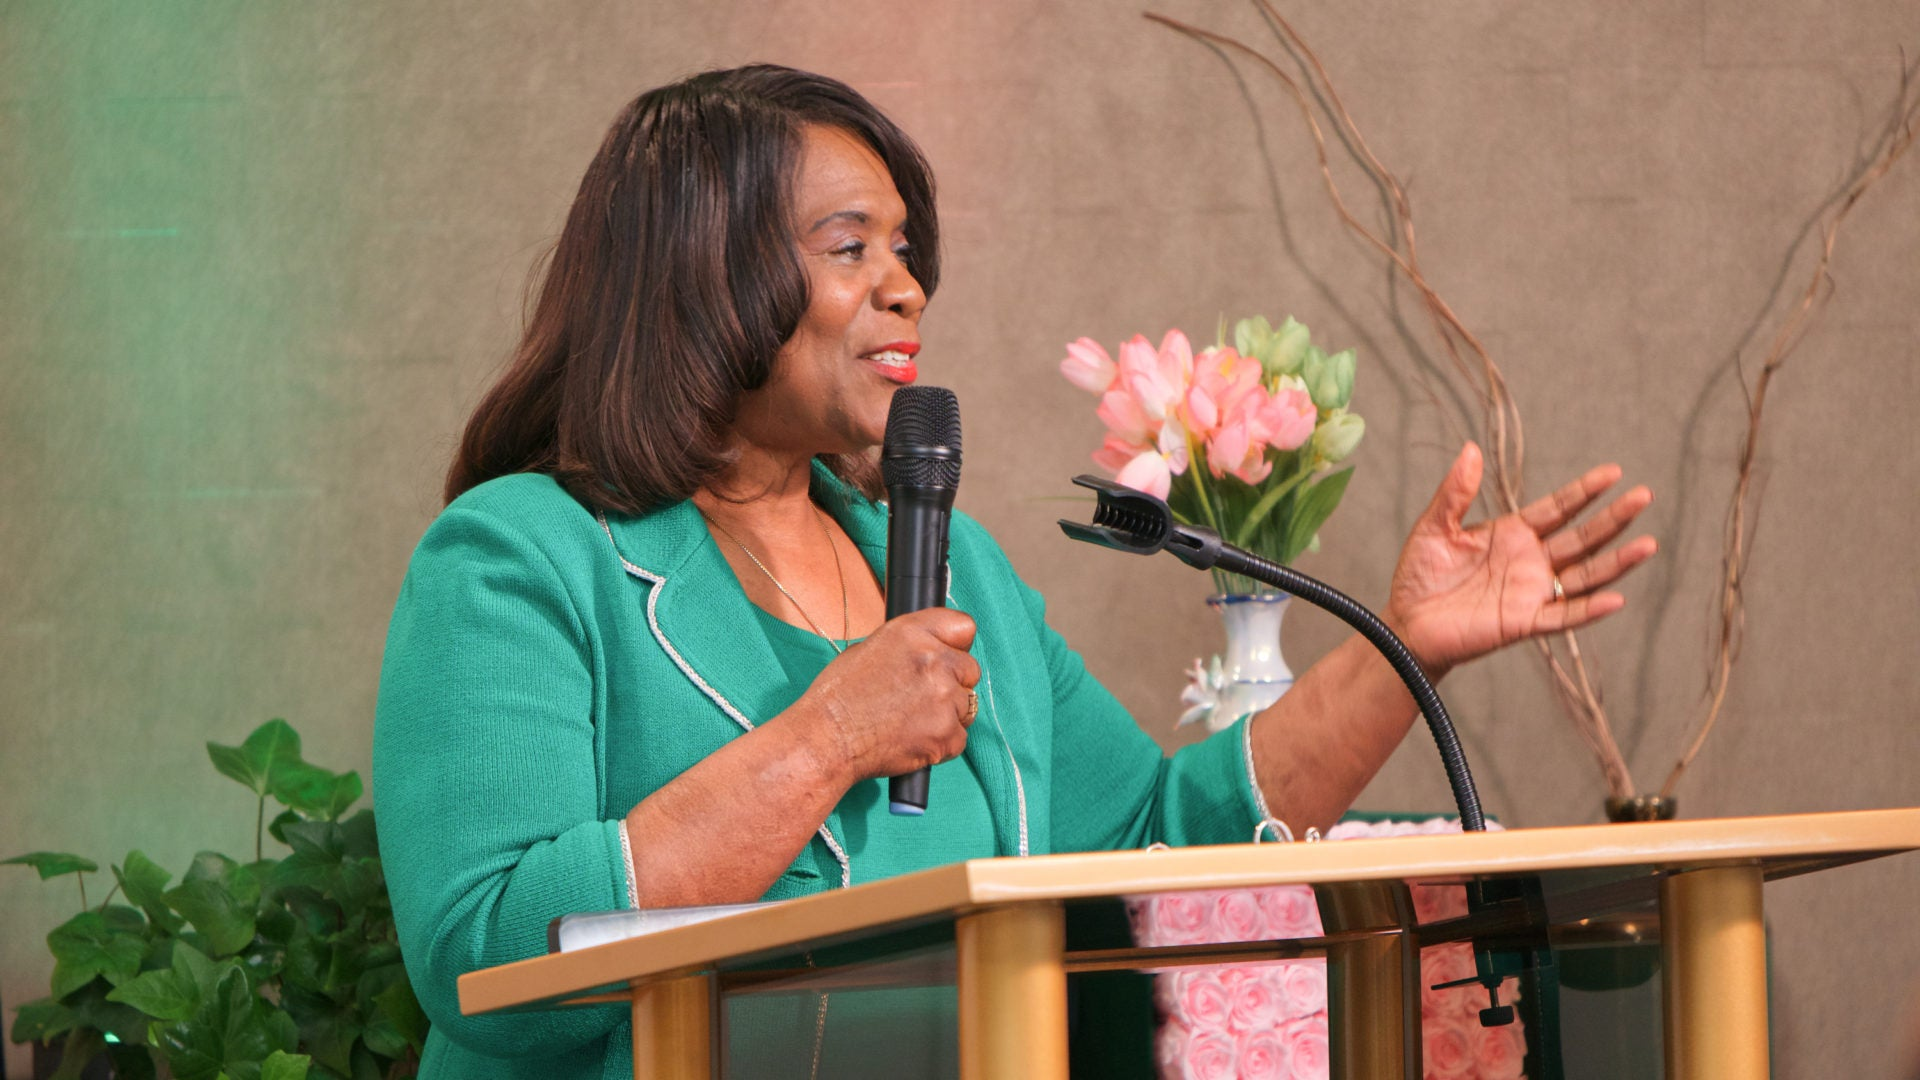 She, The People: HBCUs Have A Staunch Supporter In Dr. Glenda Baskin Glover